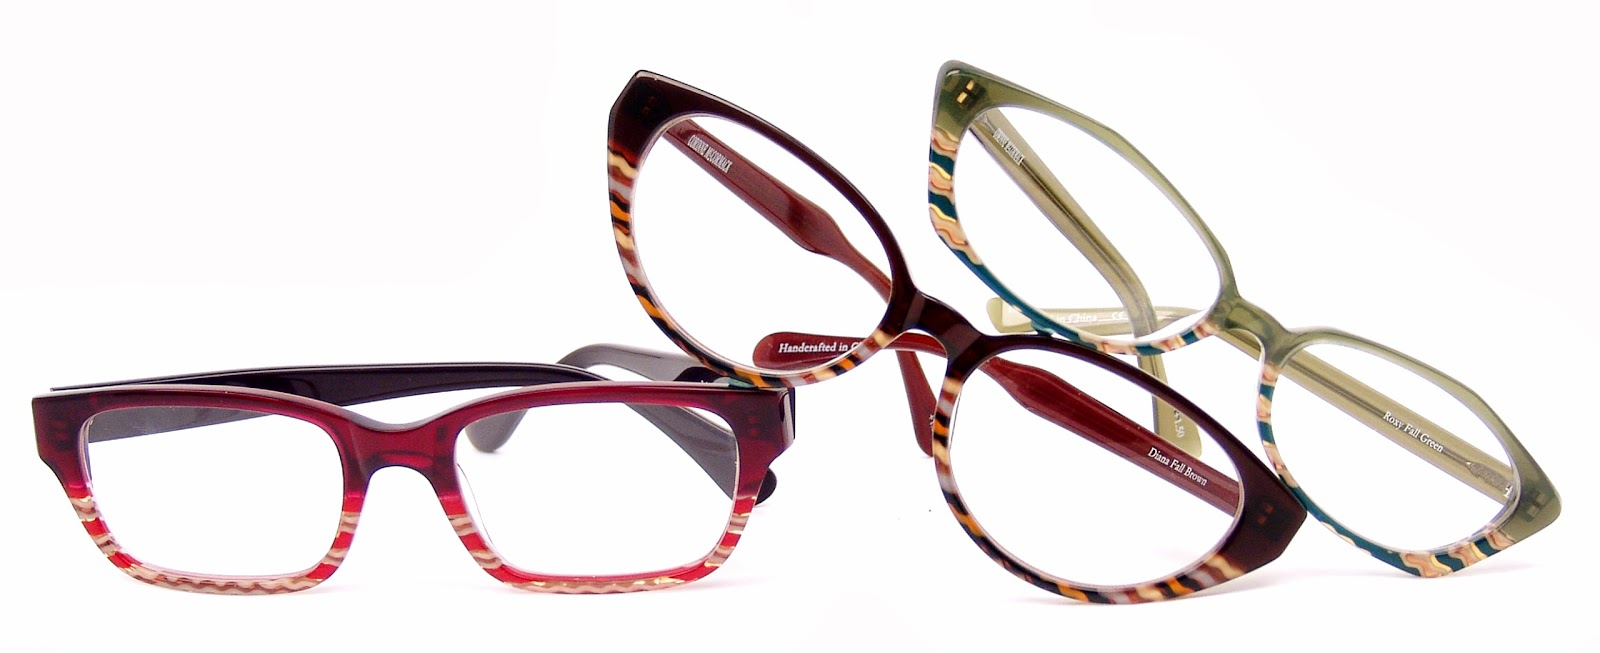 stylish reading glasses for women over 50